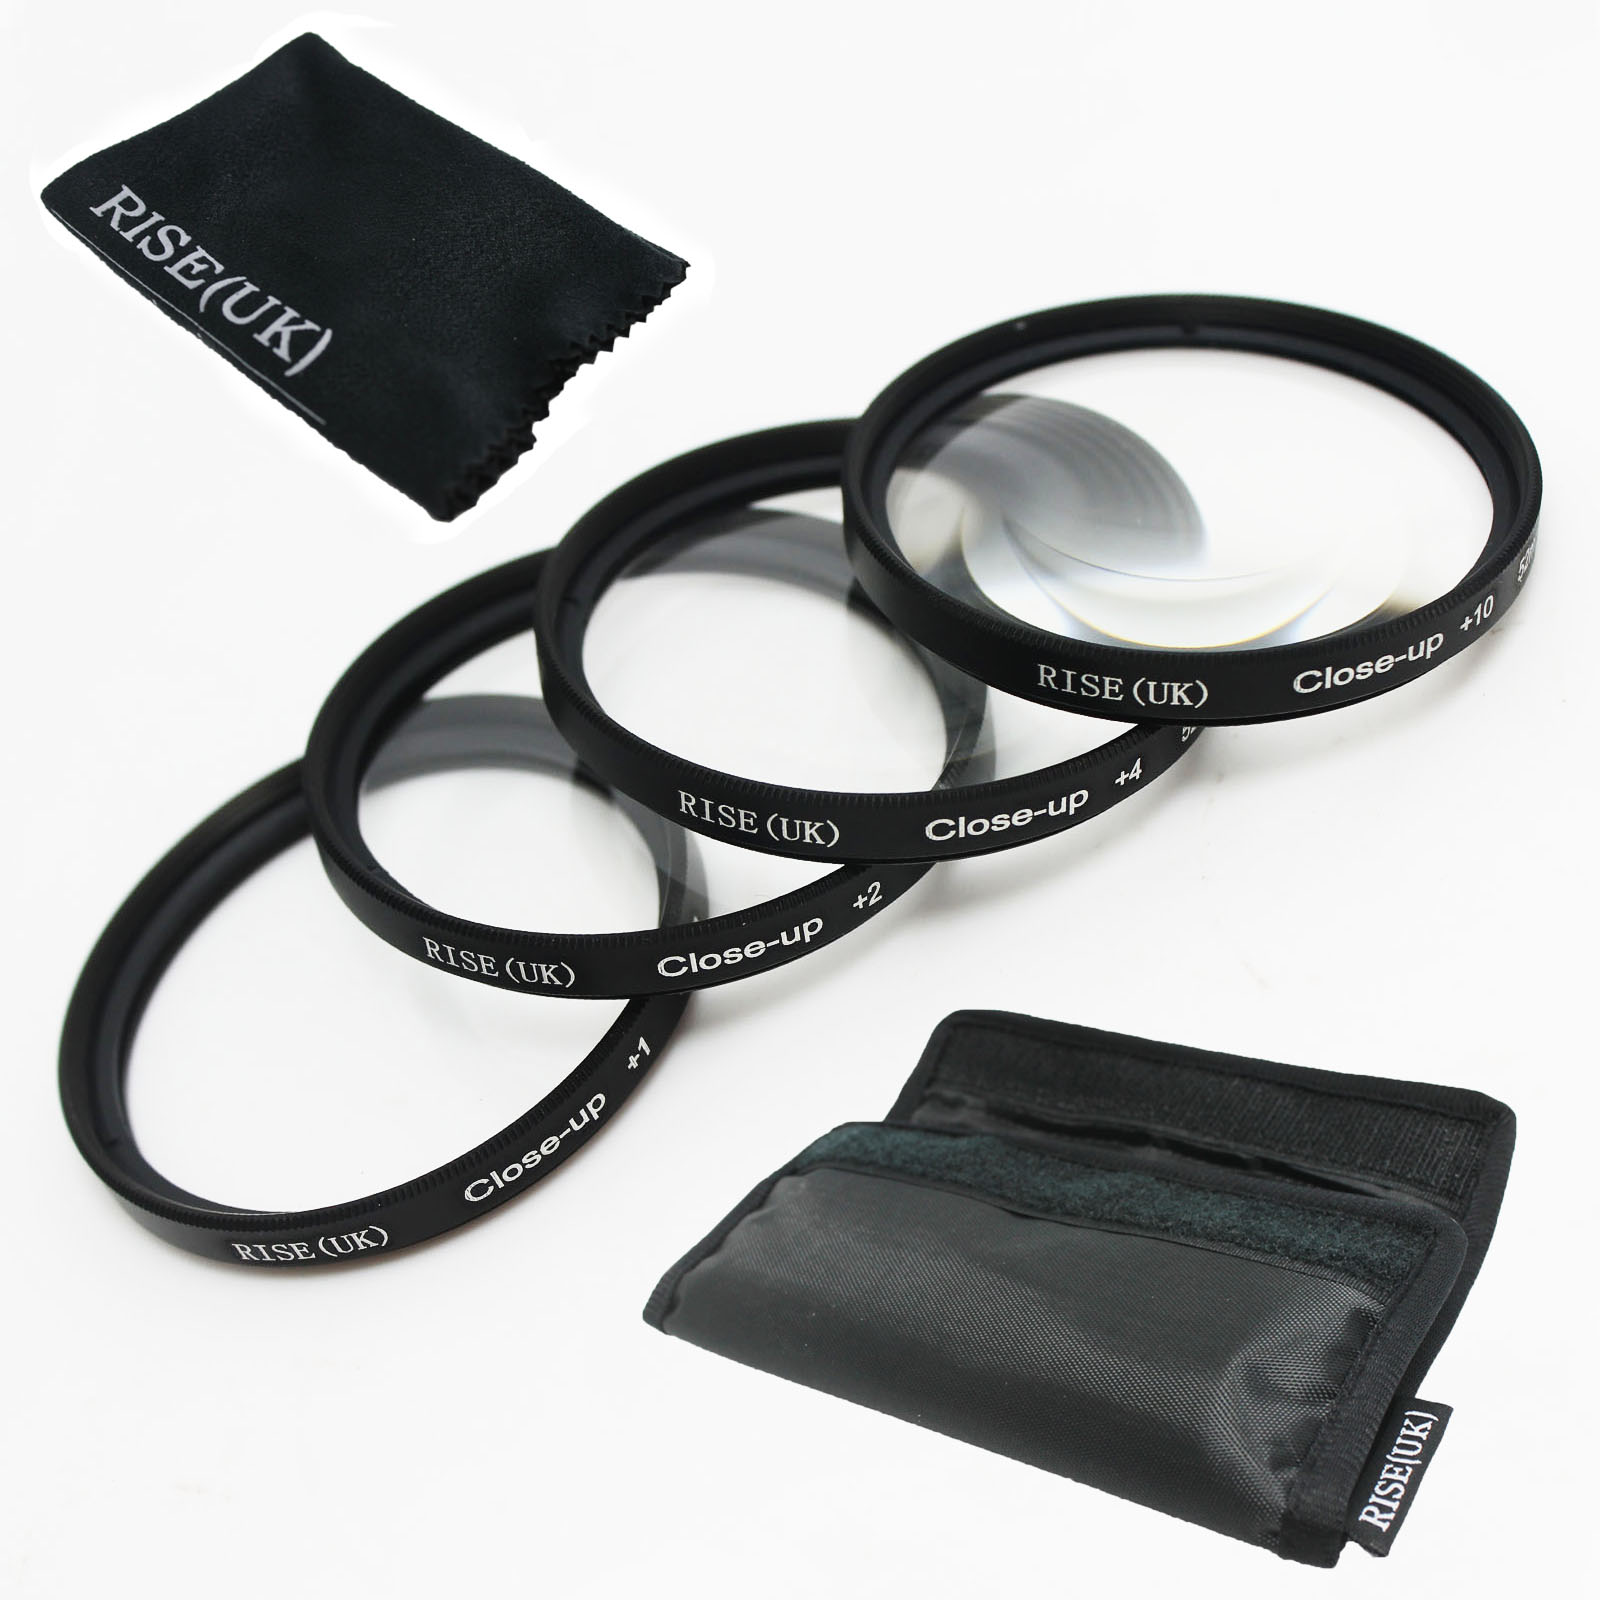 Sony Olympus Tamron Digital Cameras and Camcorders Nikon +1+2+4+10 And 4 PC Close Up Filter Set Sigma Pentax for Canon UV-CPL-FLD- 52mm 7 Piece Filter Set Includes 3 PC Filter Kit